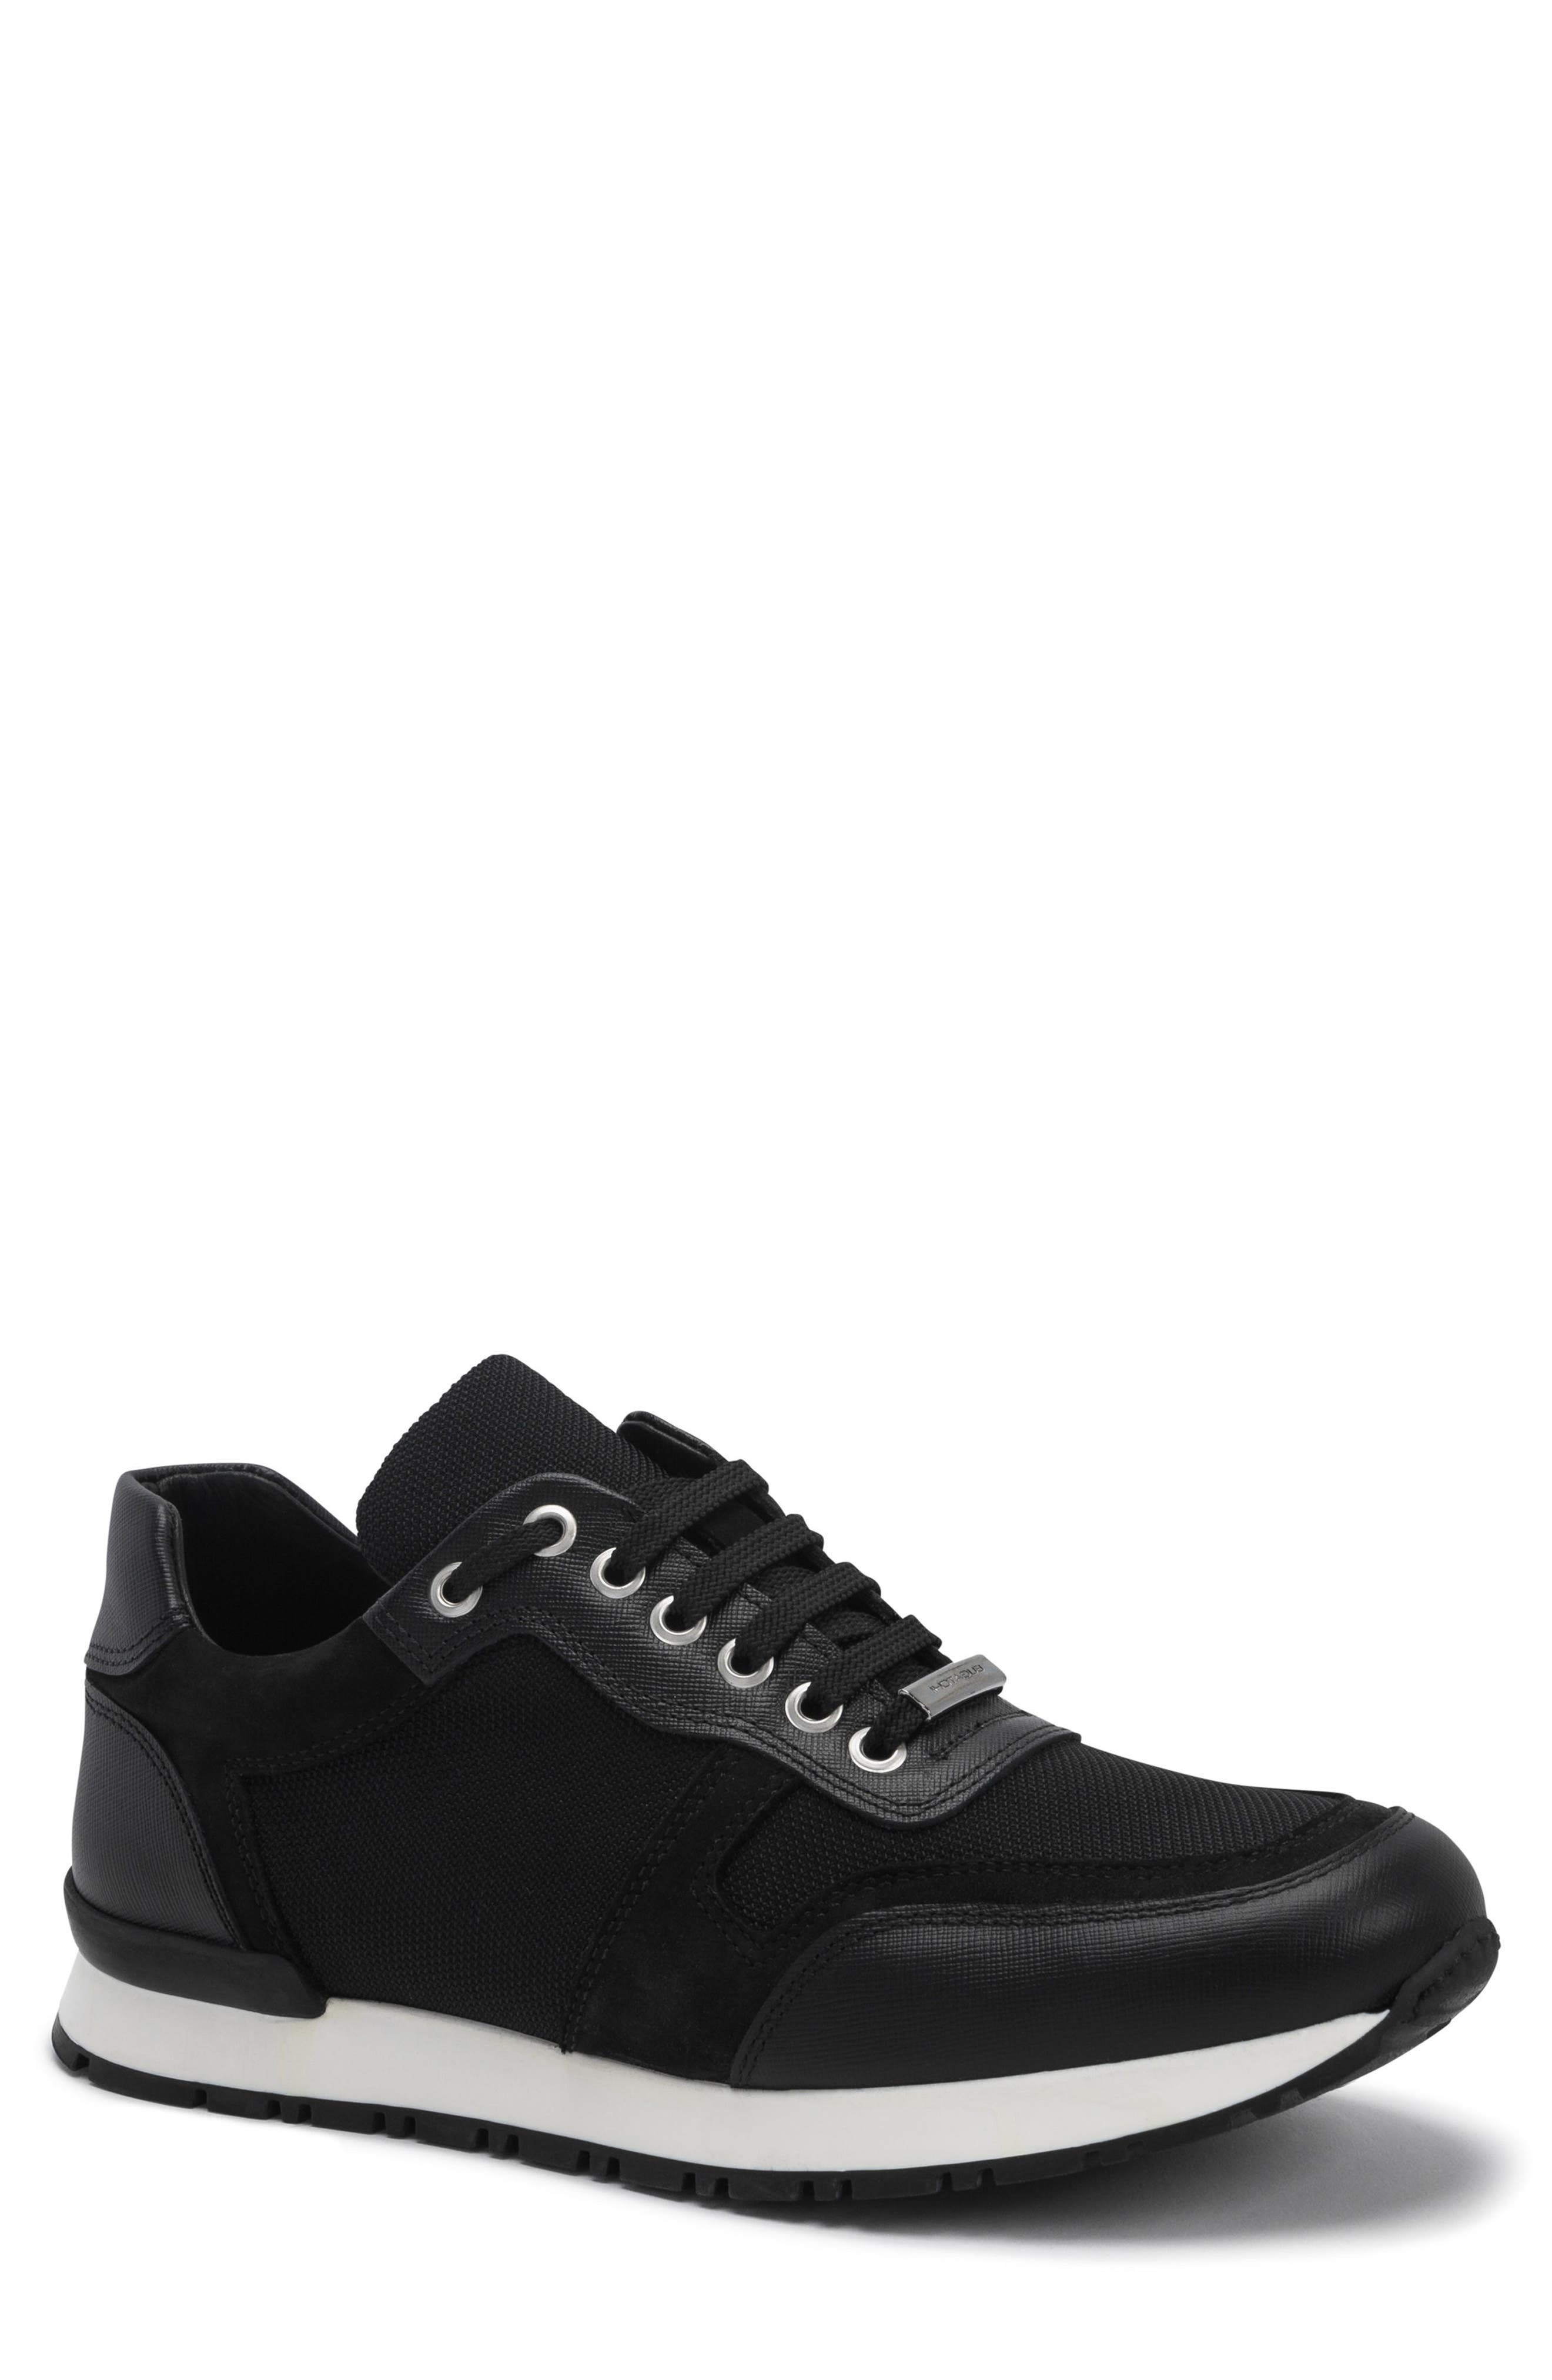 Modena Sneaker,                         Main,                         color, NERO BLACK